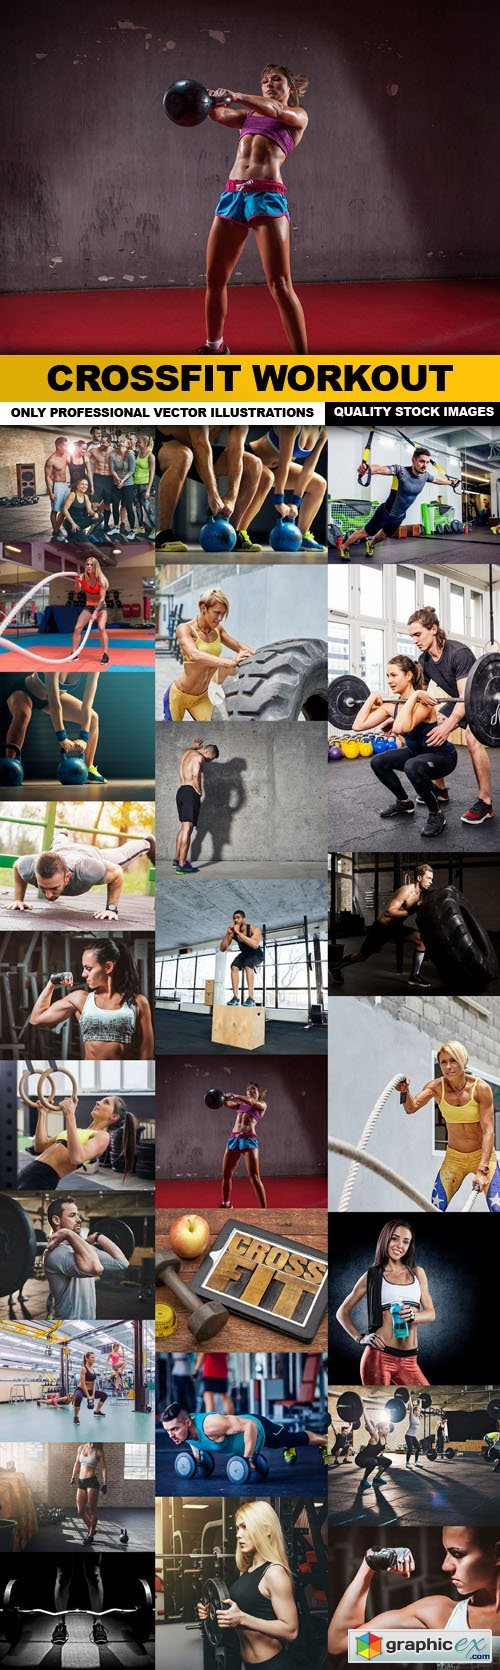 CrossFit Workout - 25 HQ Images